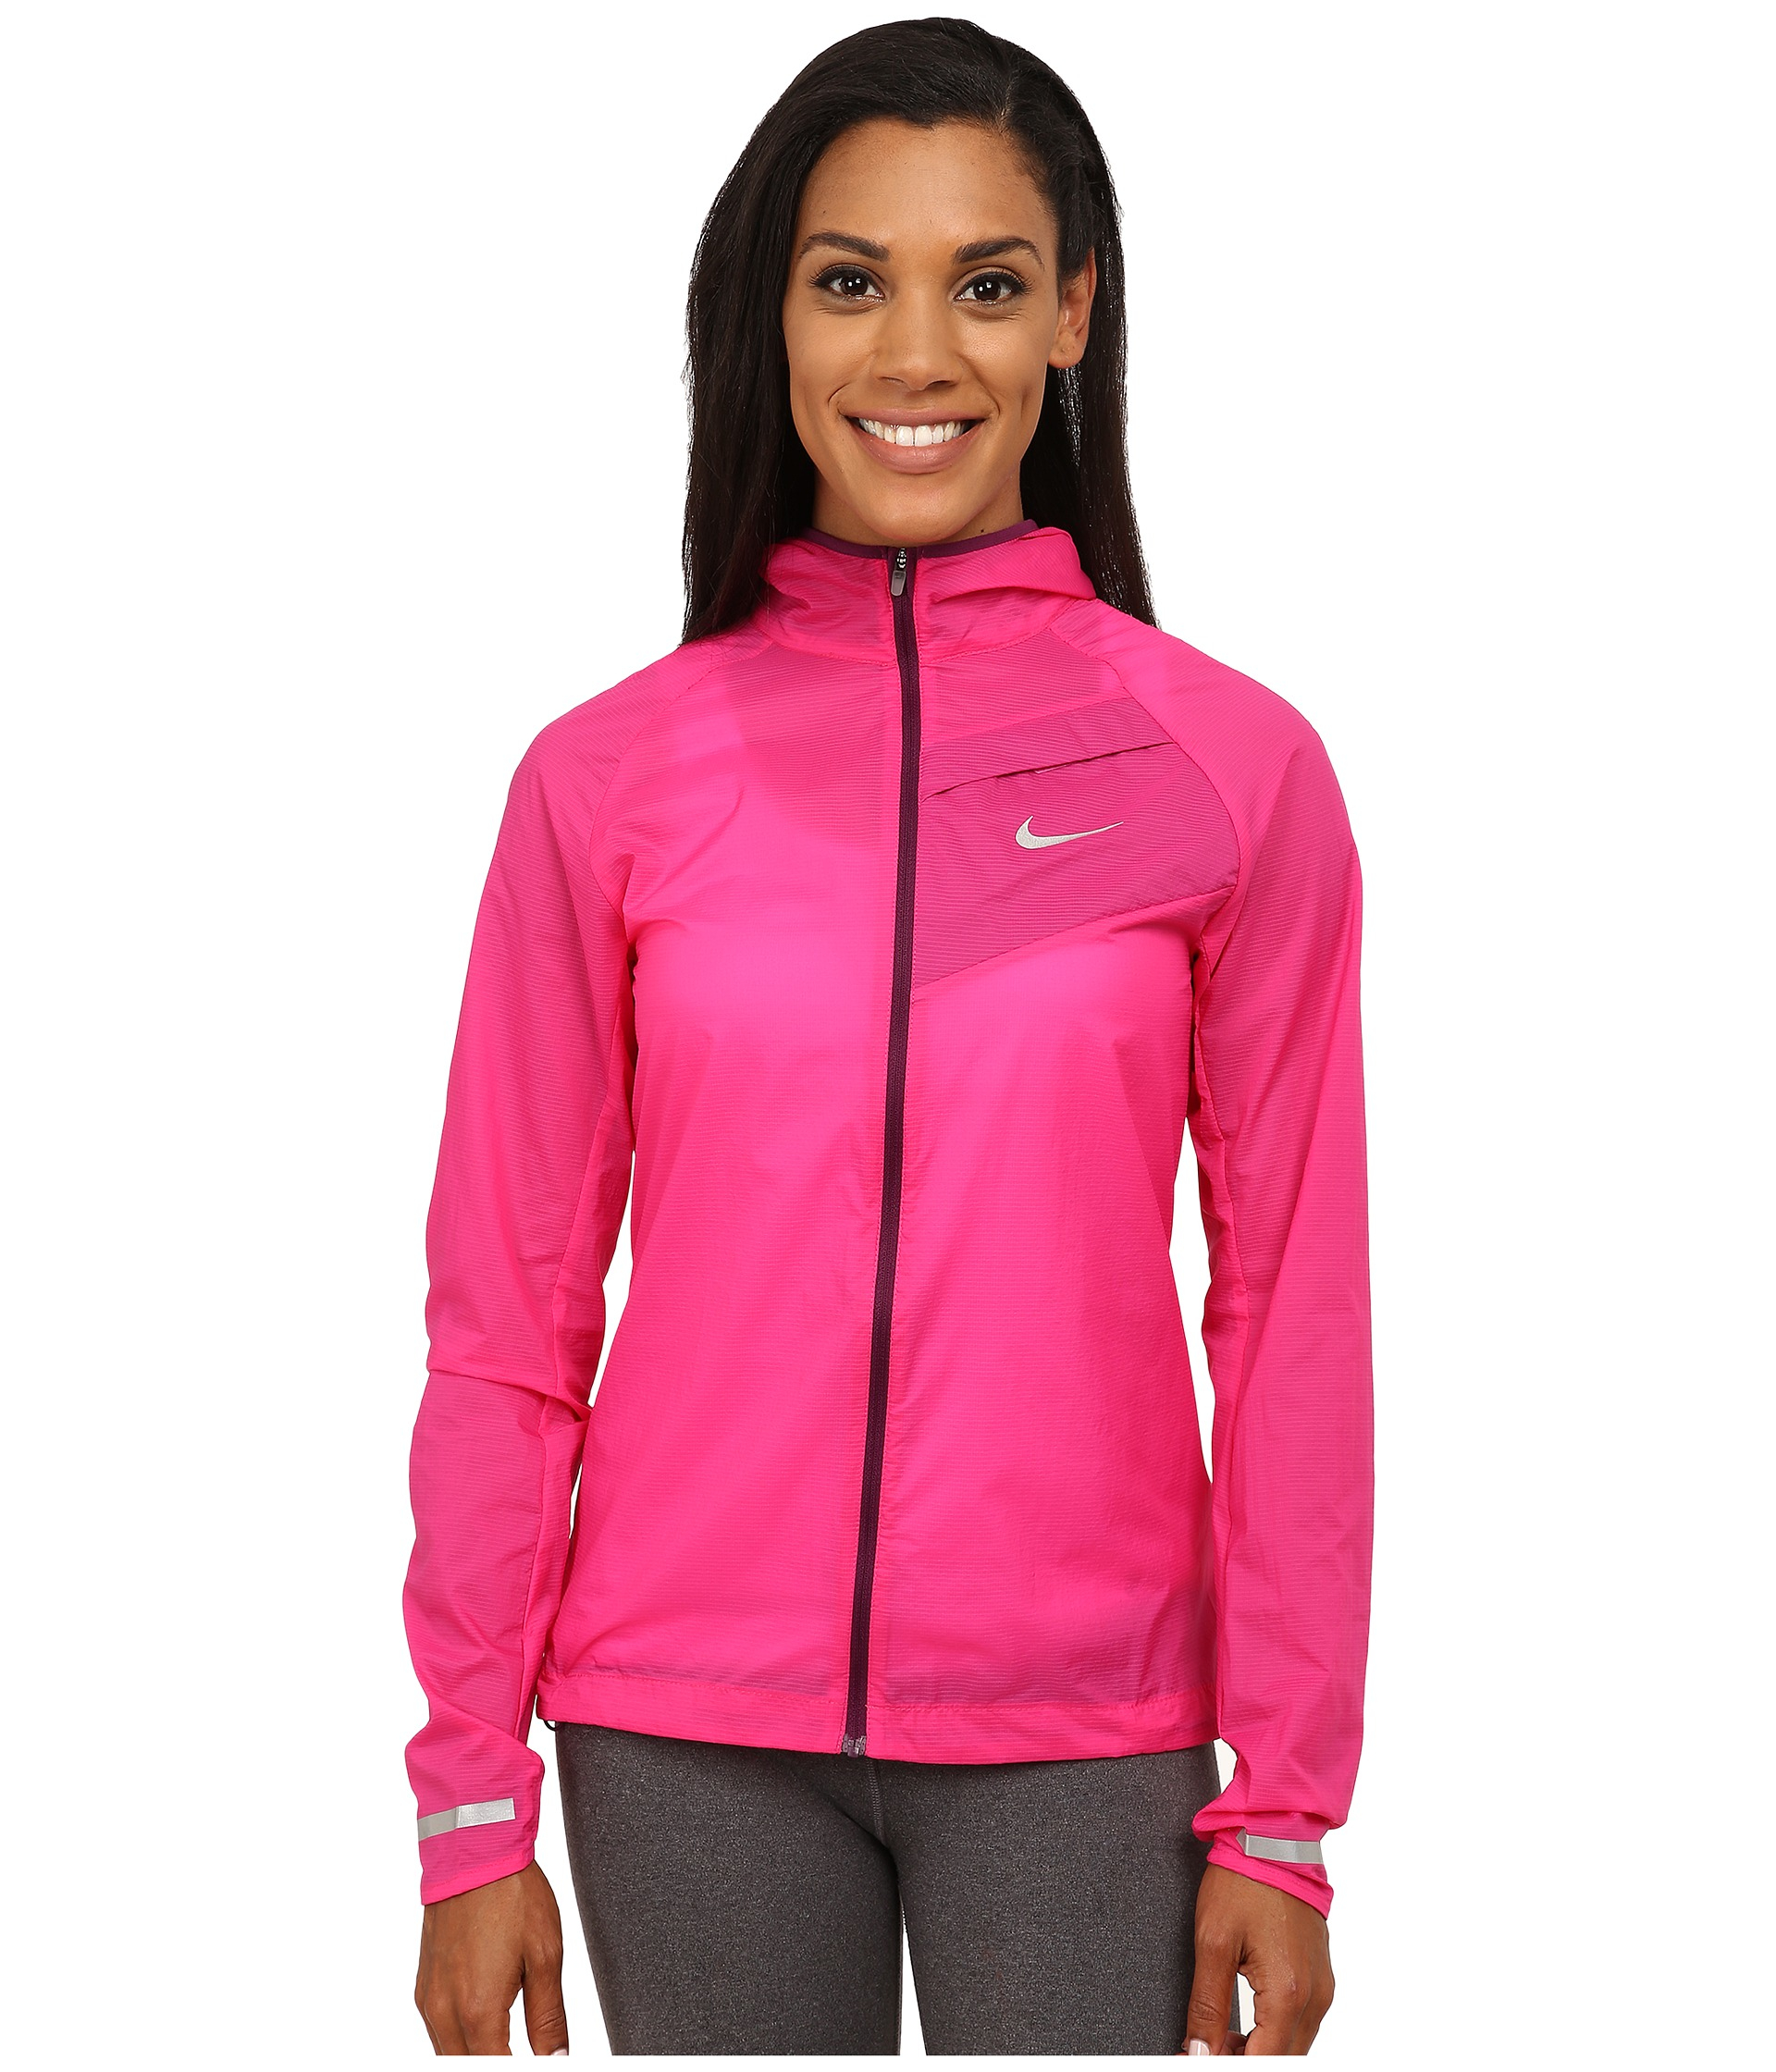 232ba8825694 Nike Impossibly Light Jacket in Pink (Vivid Pink Mulberry Reflective S)